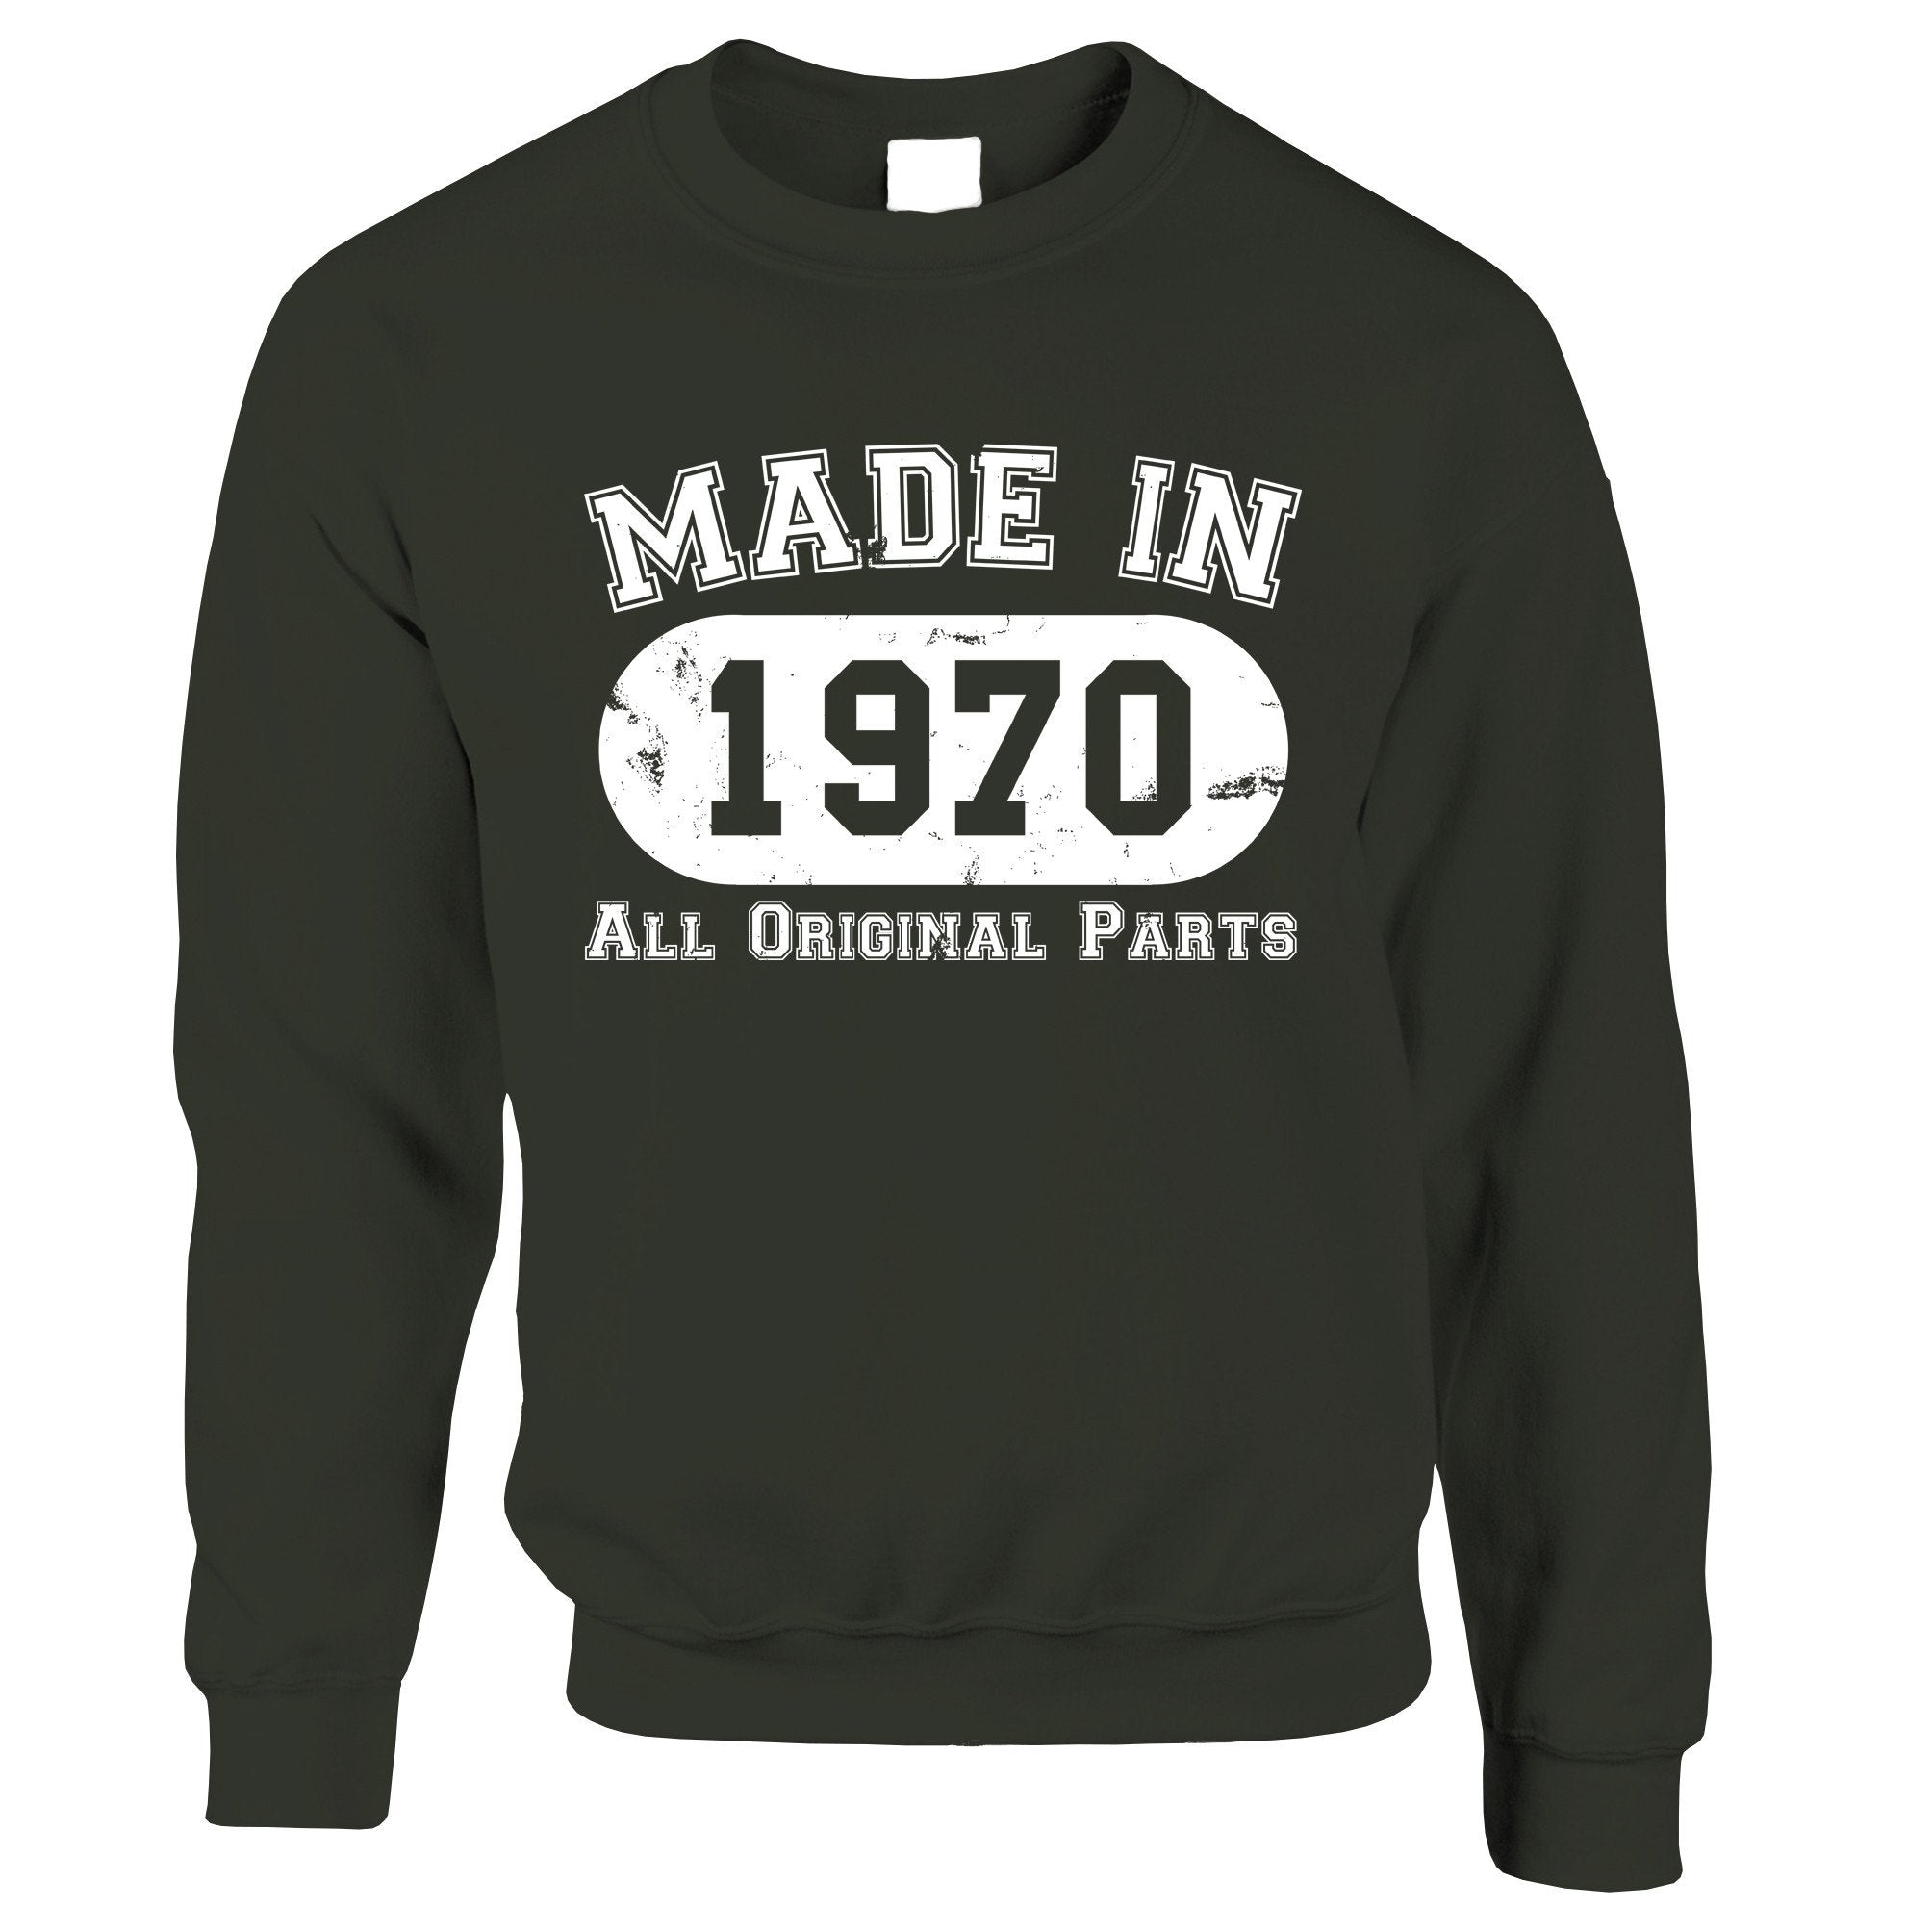 Made in 1970 All Original Parts Sweatshirt Jumper [Distressed]